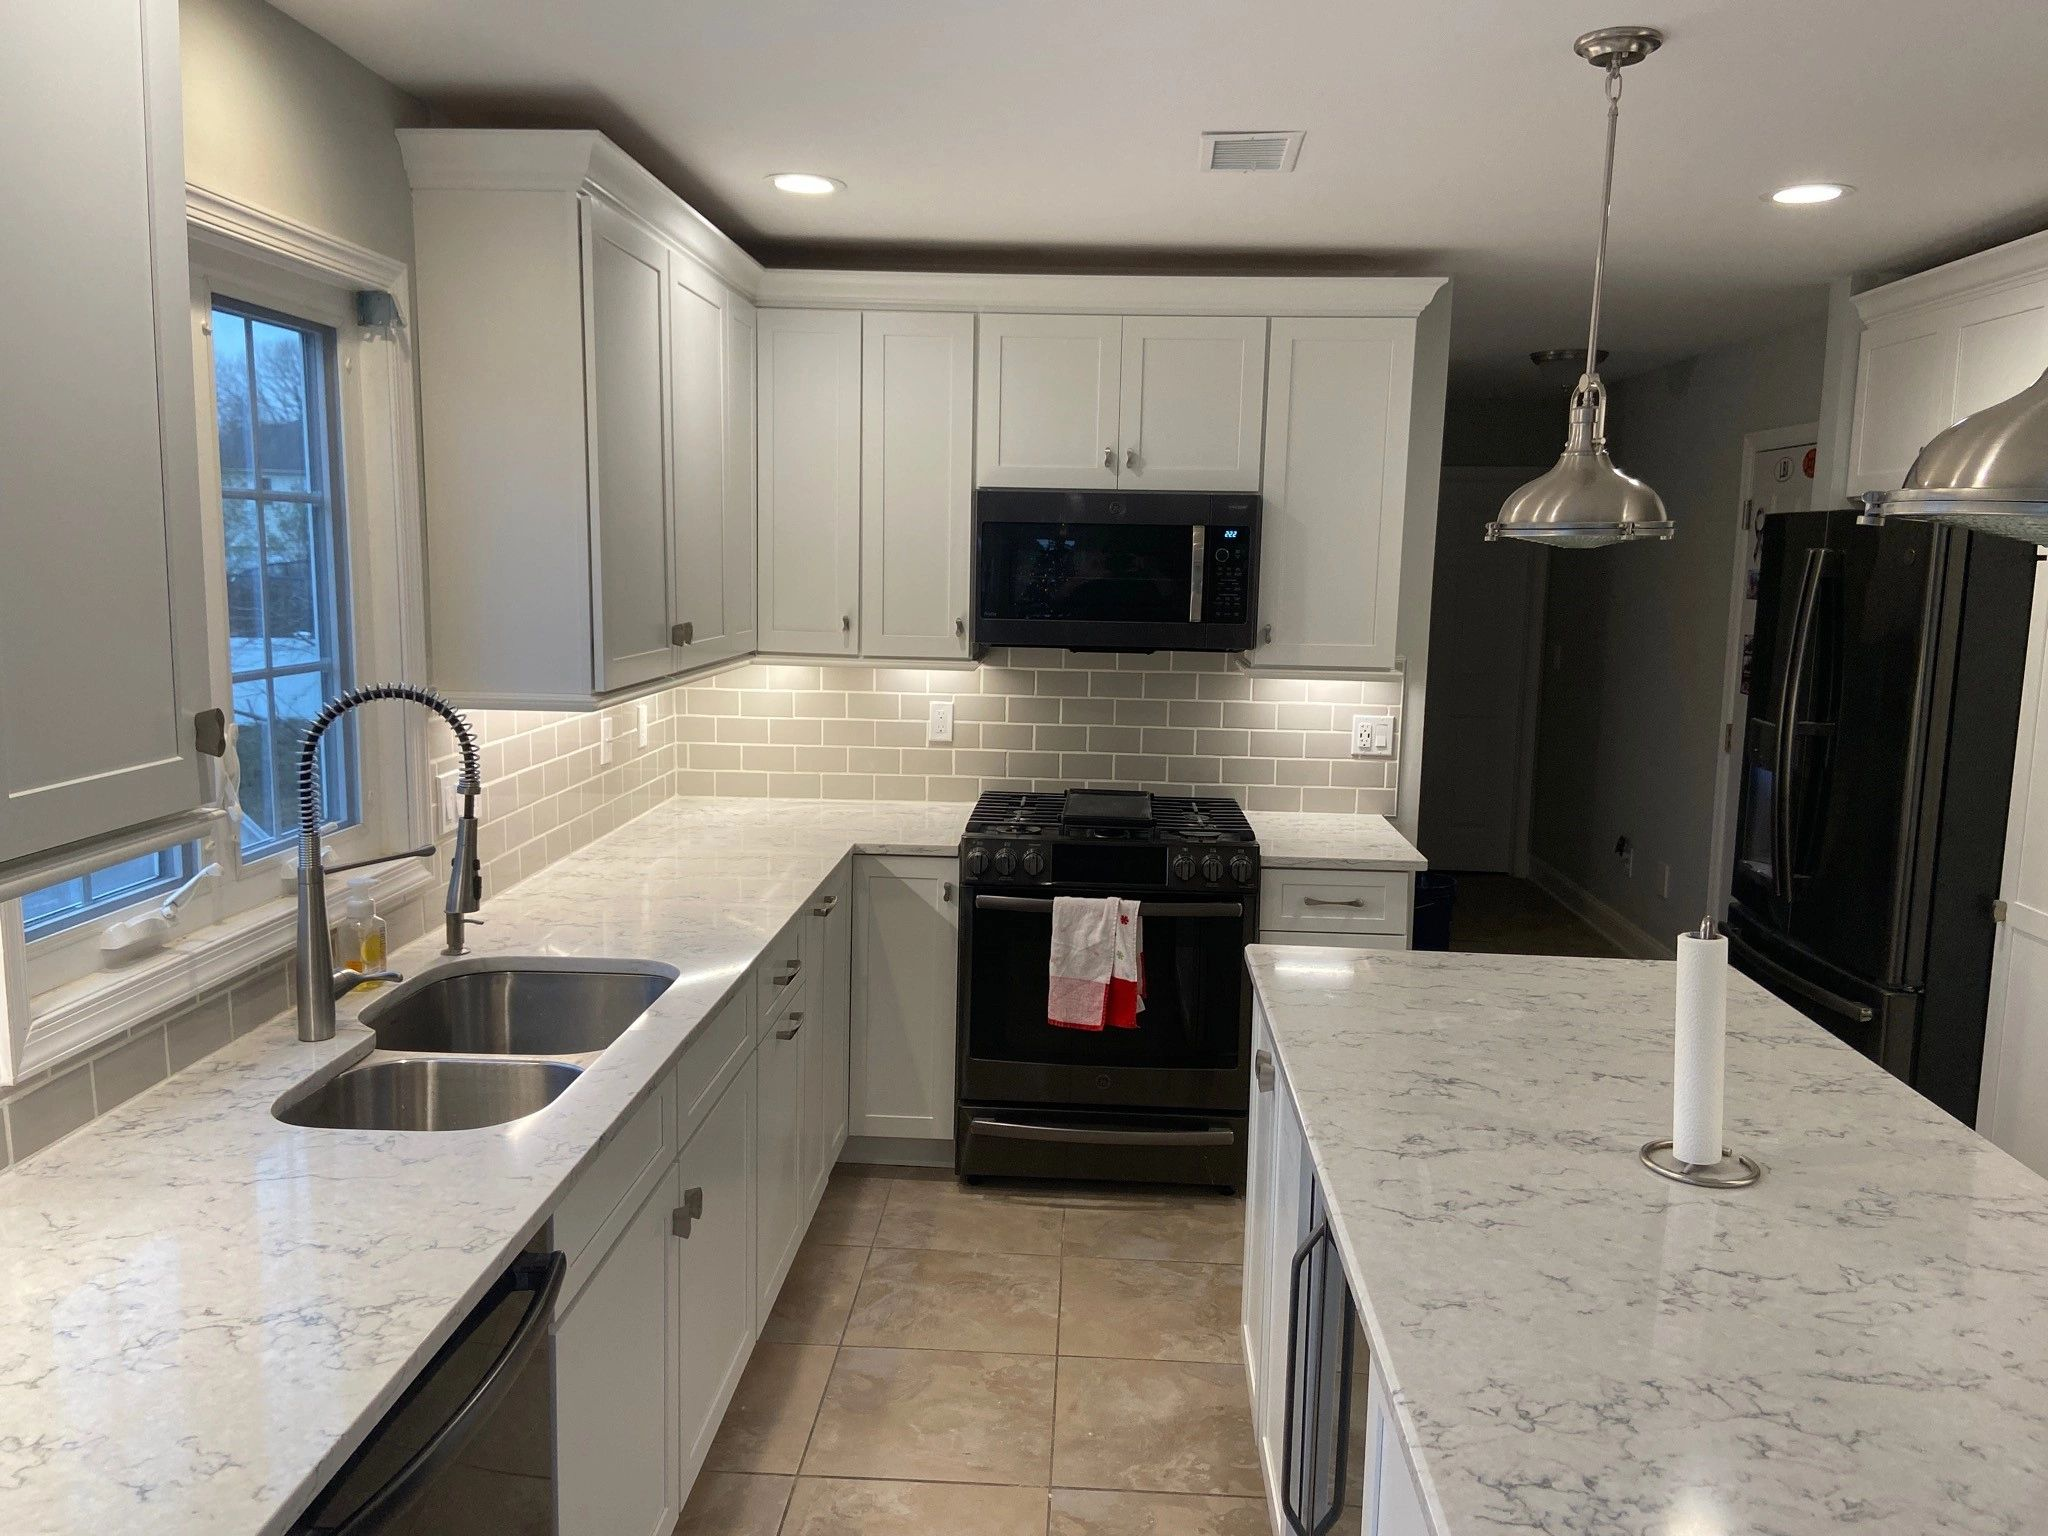 Cabinets And Countertops Kitchen Design Centers